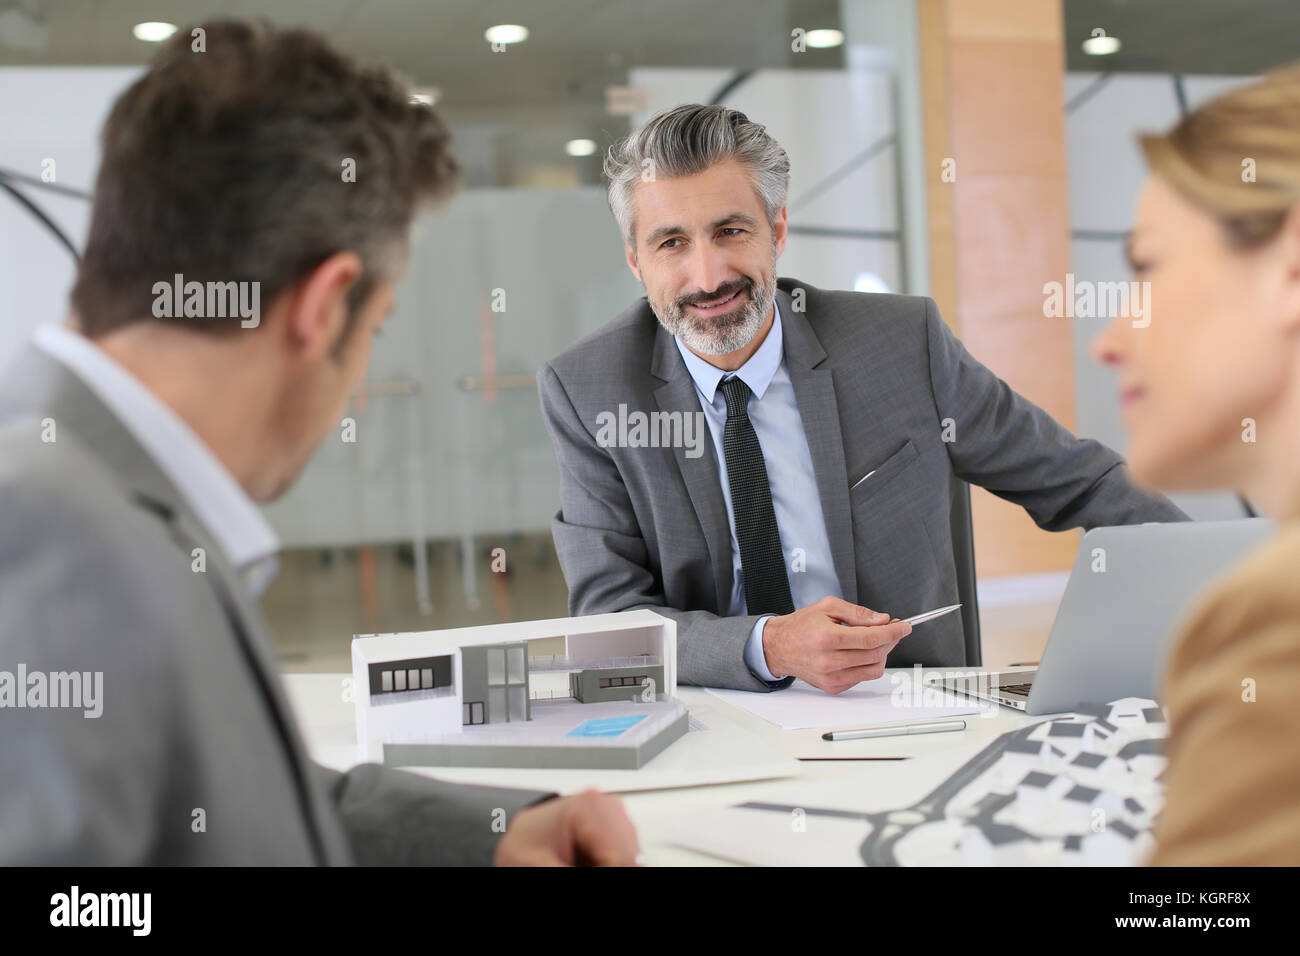 Architect meeting with clients in office - Stock Image